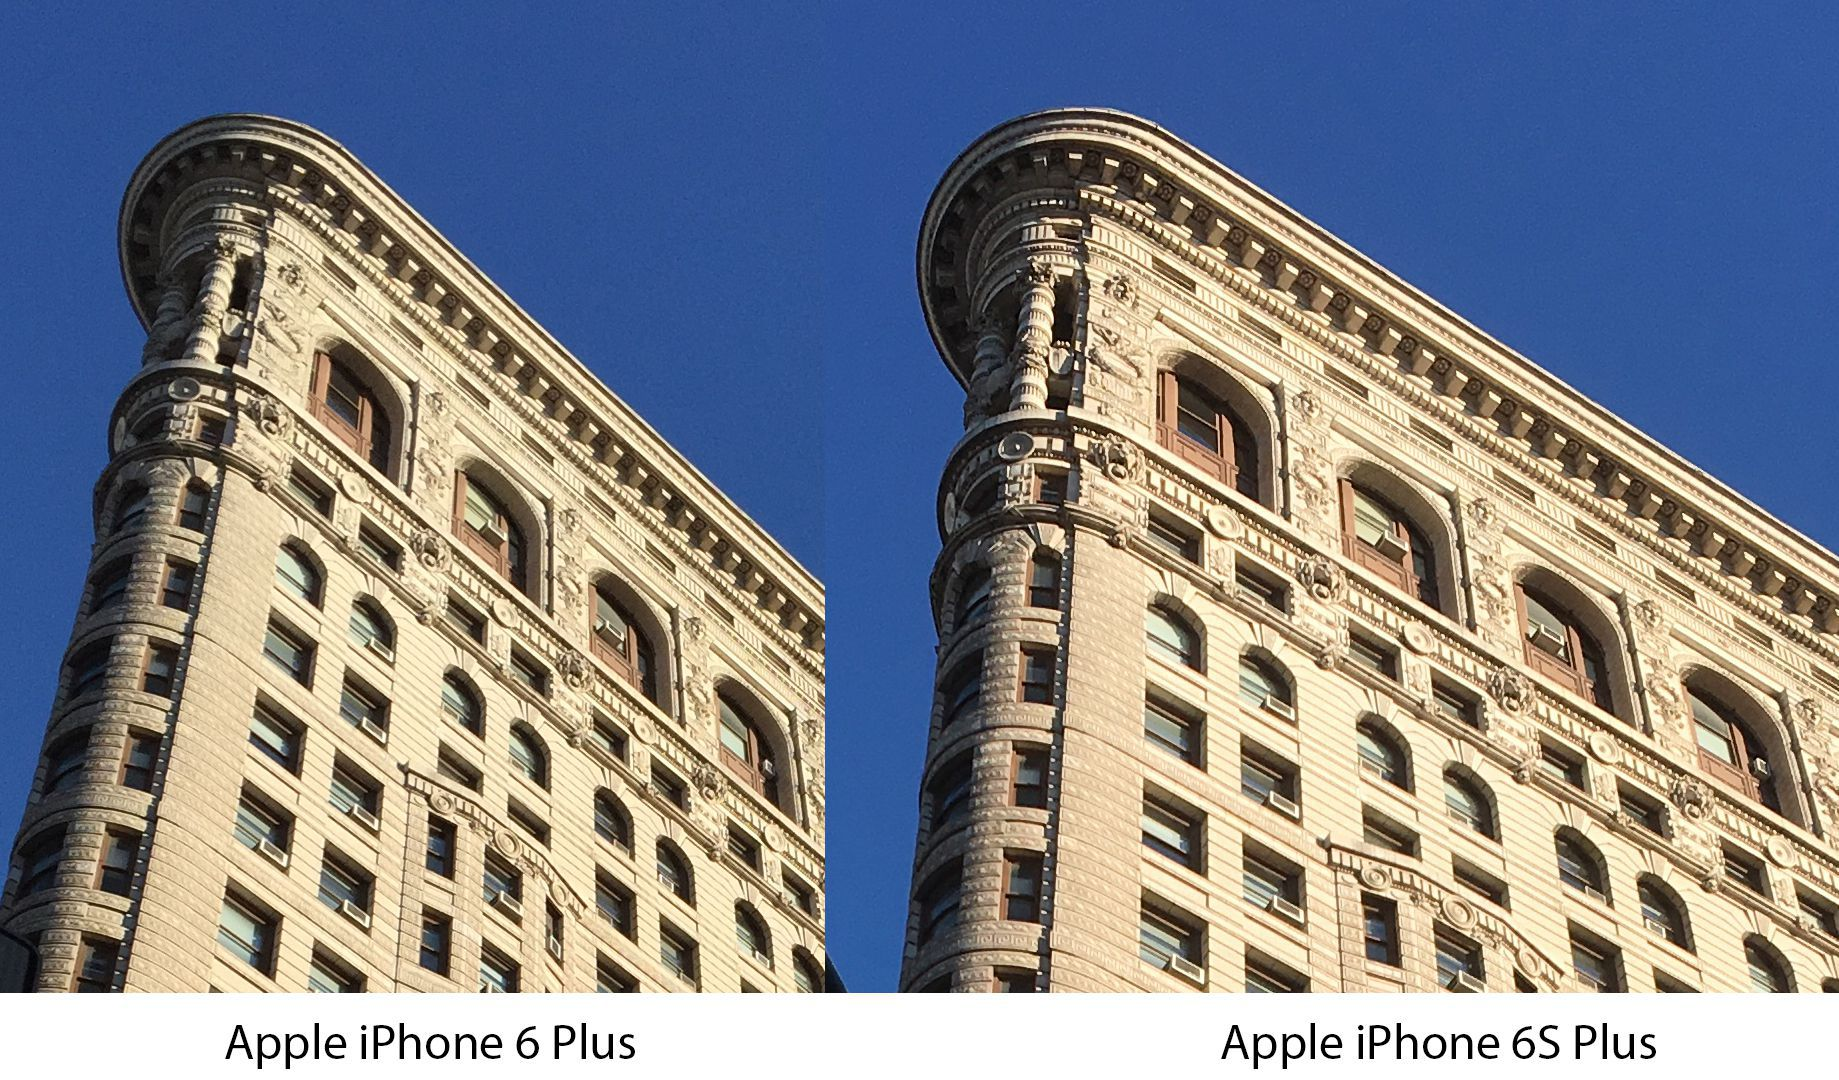 Comparatif photos iPhone 6 Plus et iPhone 6S Plus